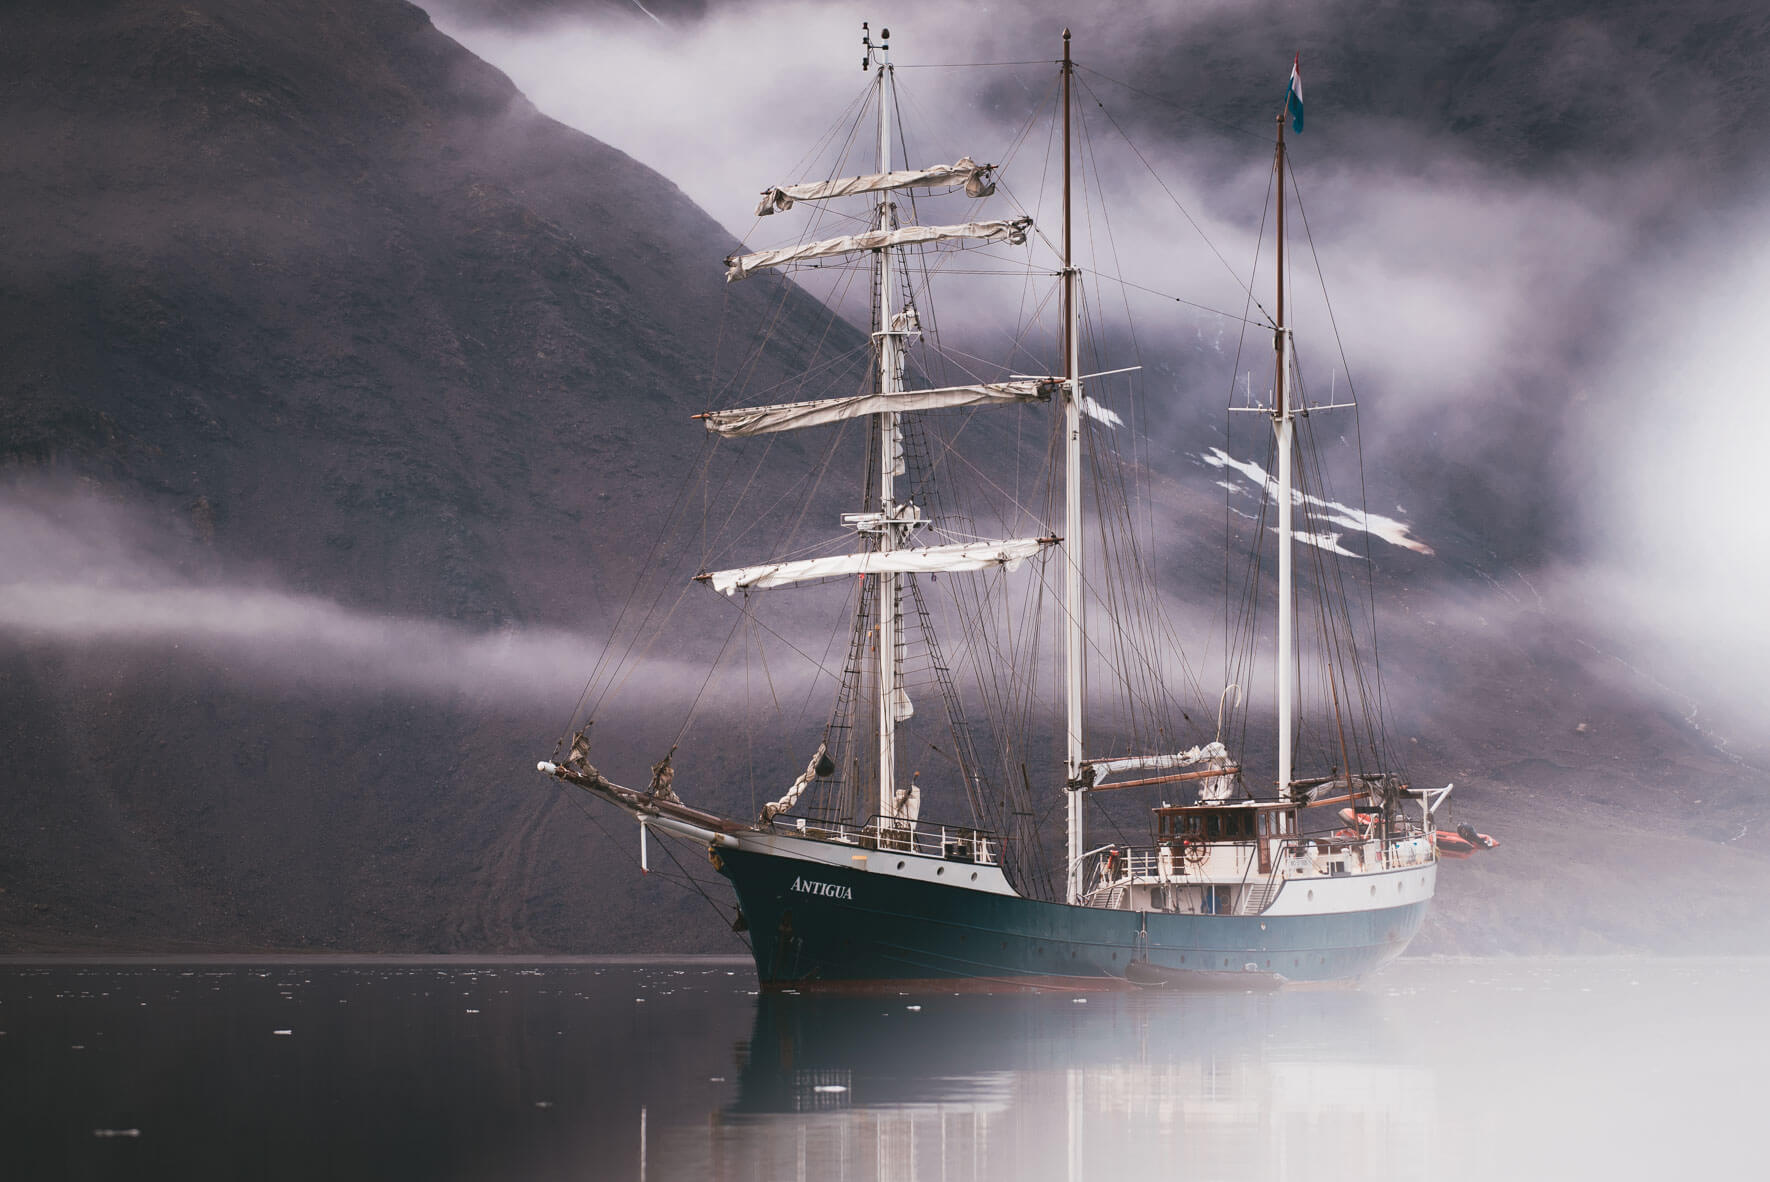 Three-mast sailing ship Antigua in the waters of Svalbard